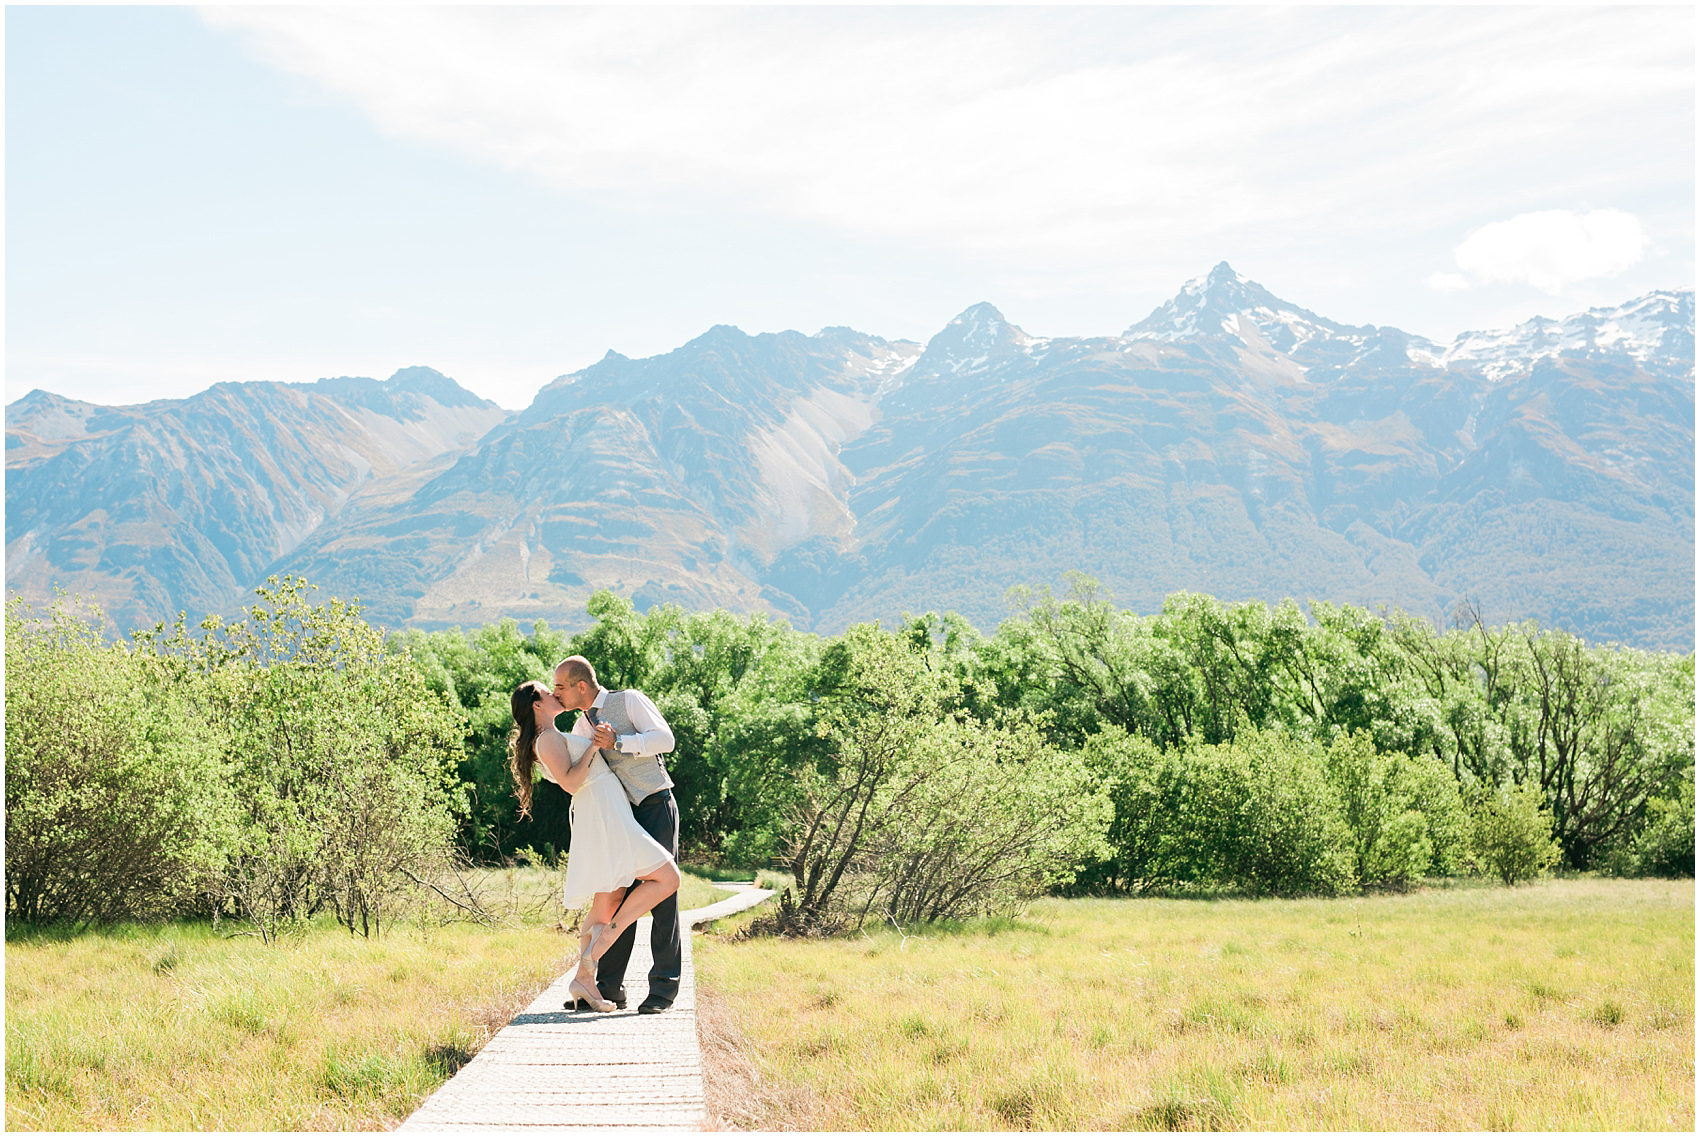 Queenstown New Zealand Wedding Photographer Bruna Fabricio Smetona Photo-0045.jpg